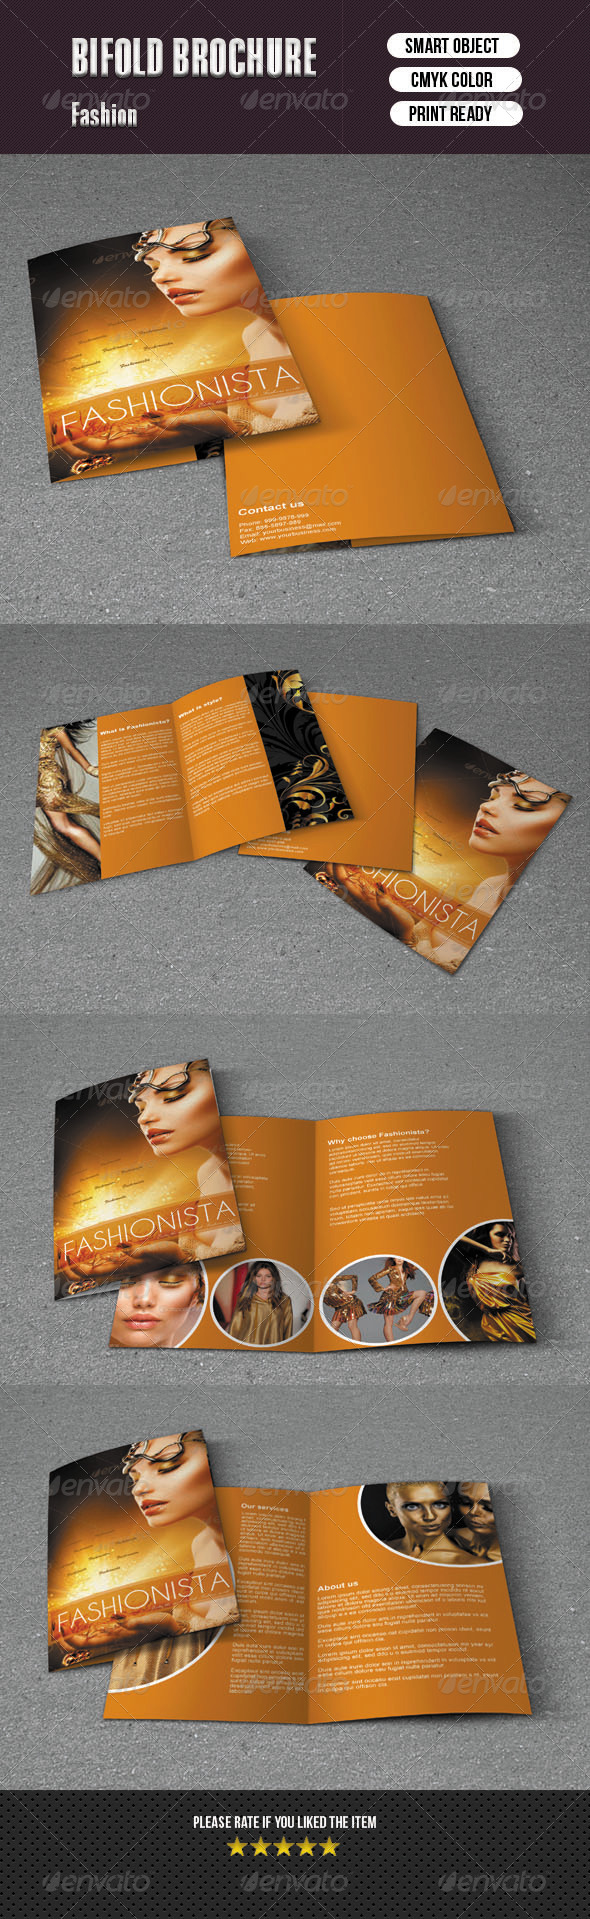 Bifold Brochure For Fashion